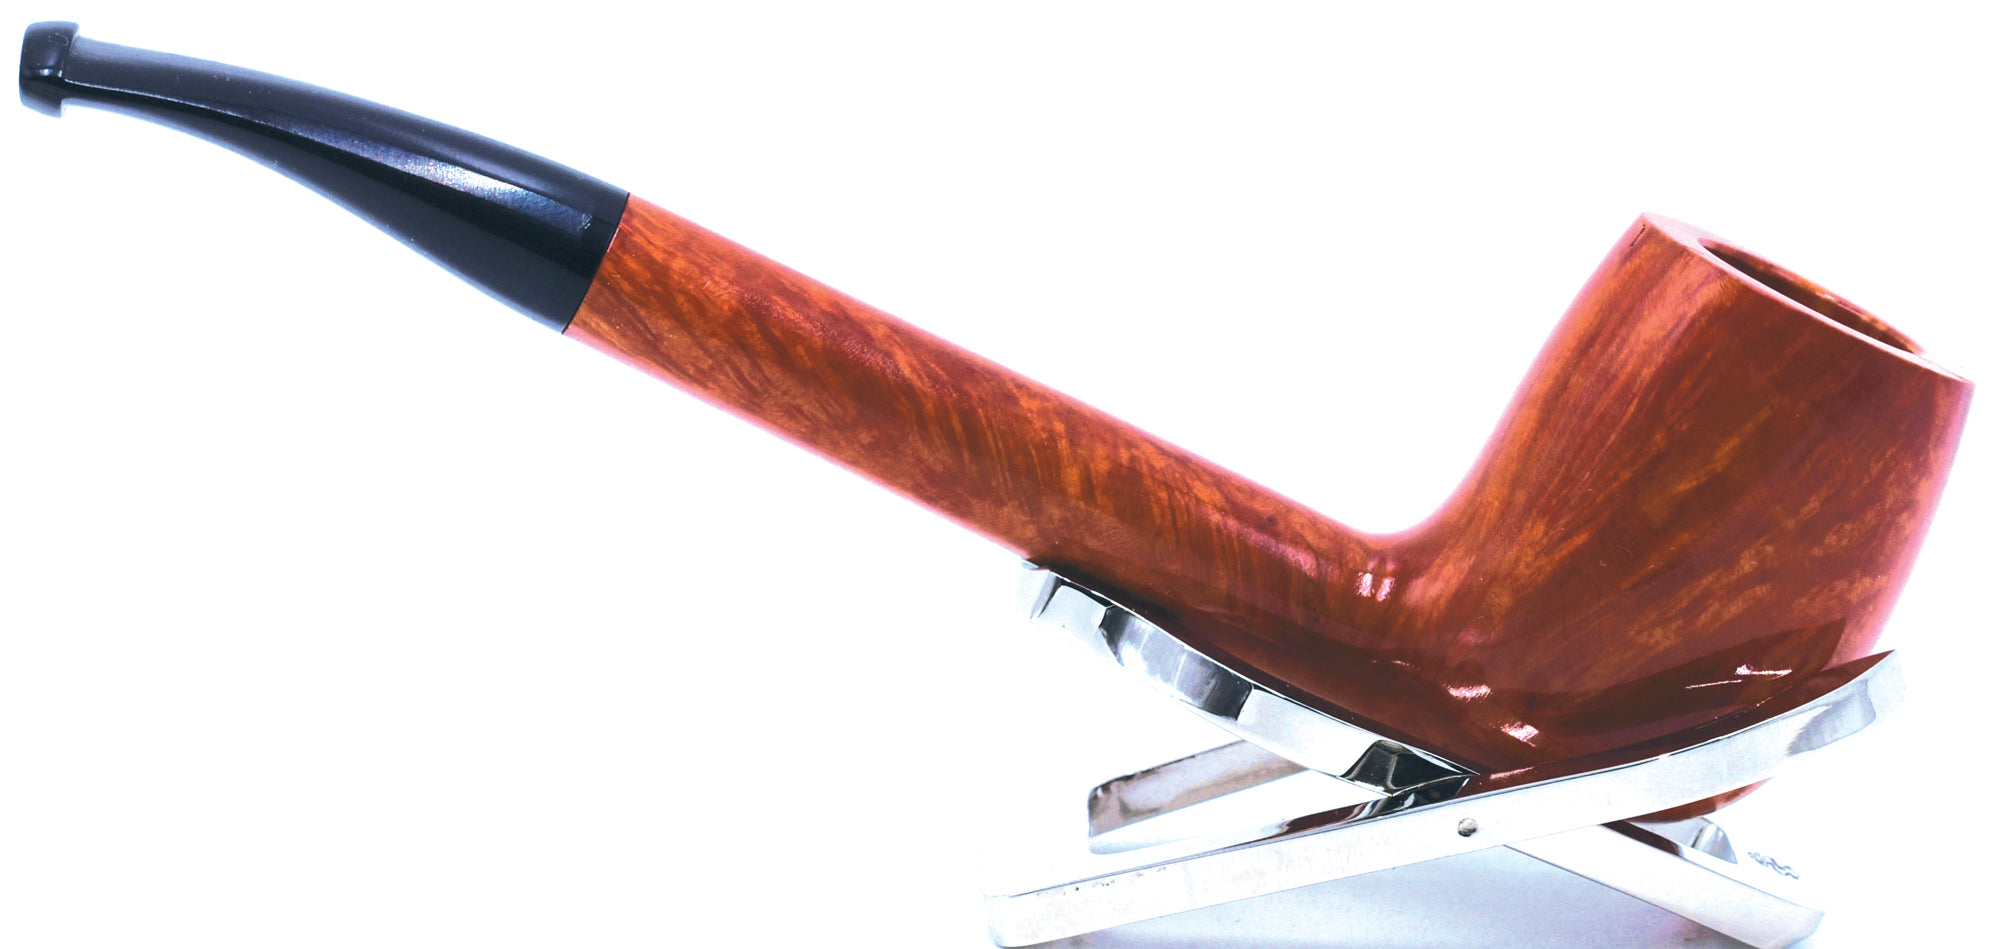 LEGENDEX® CANADIAN* Non-Filtered Long Stem Briar Smoking Pipe Made In Italy 01-08-801